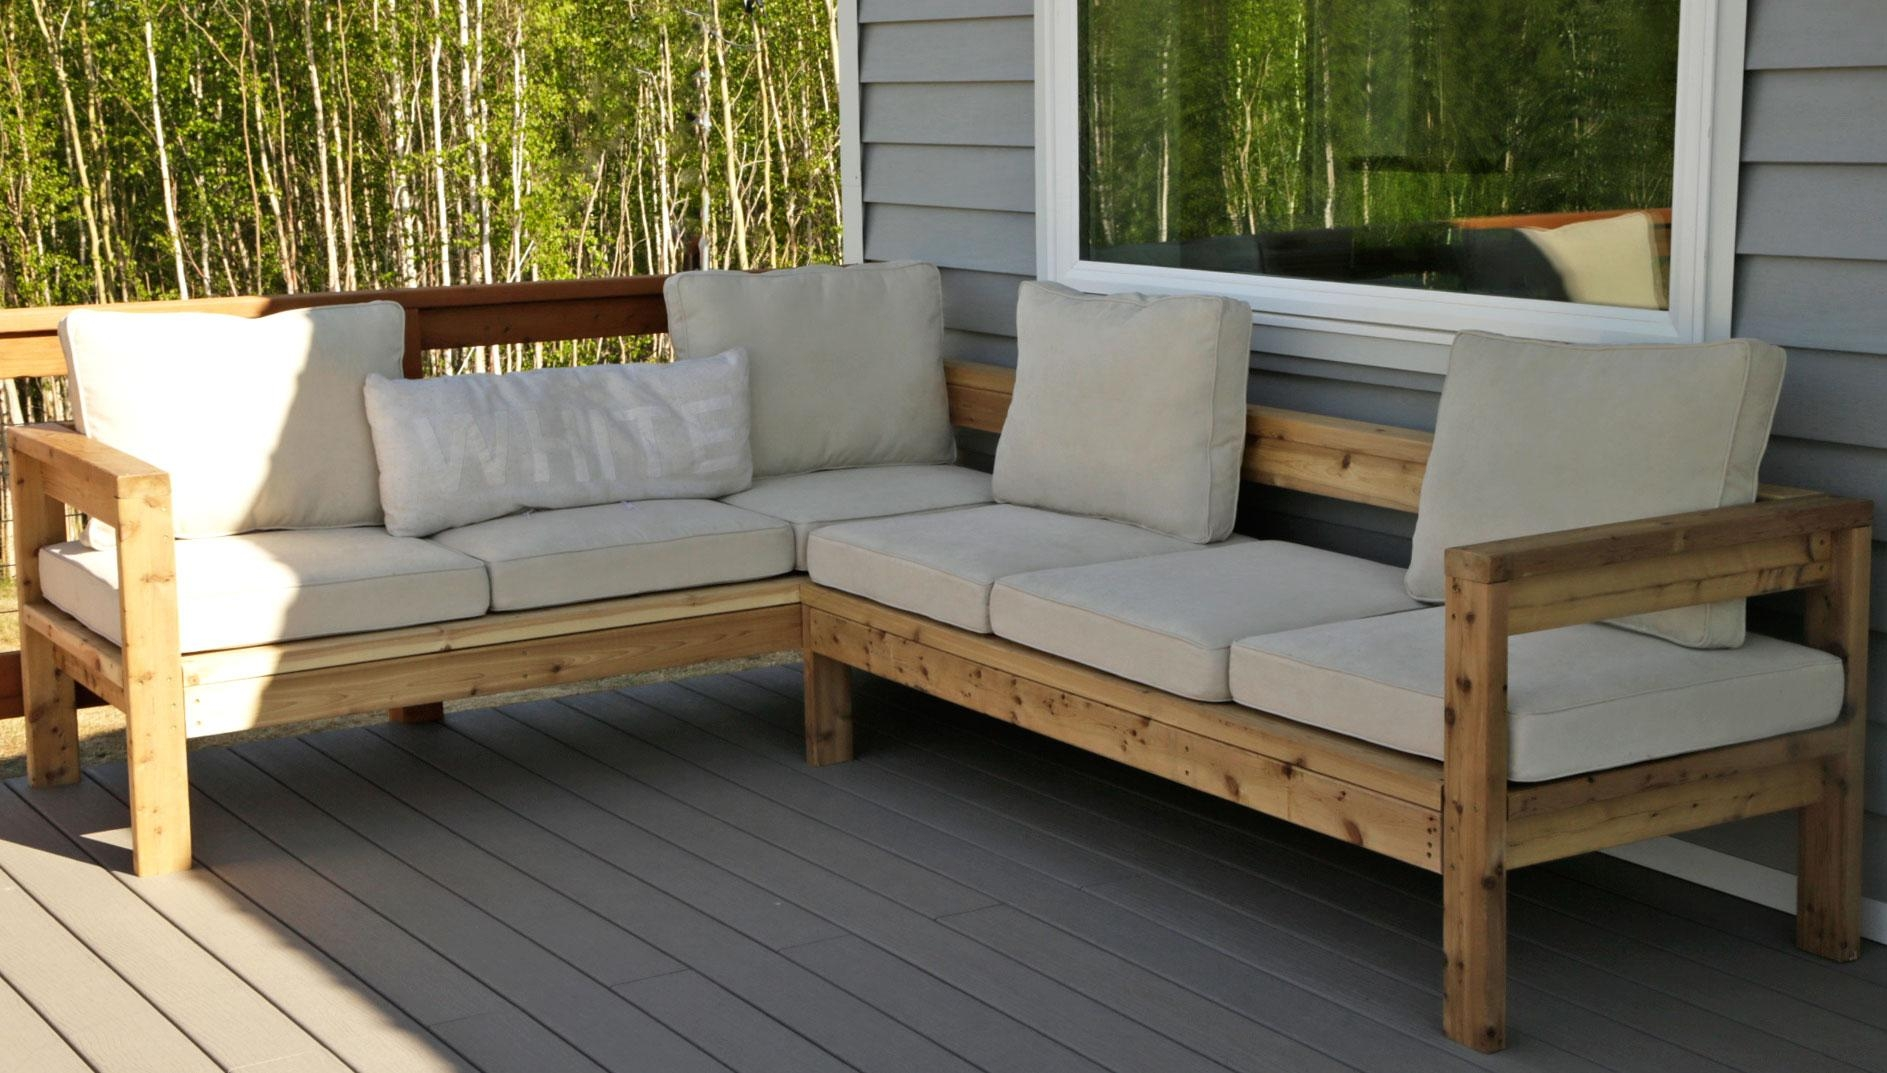 20 Collection Of Ana White Outdoor Sectional Sofas Sofa